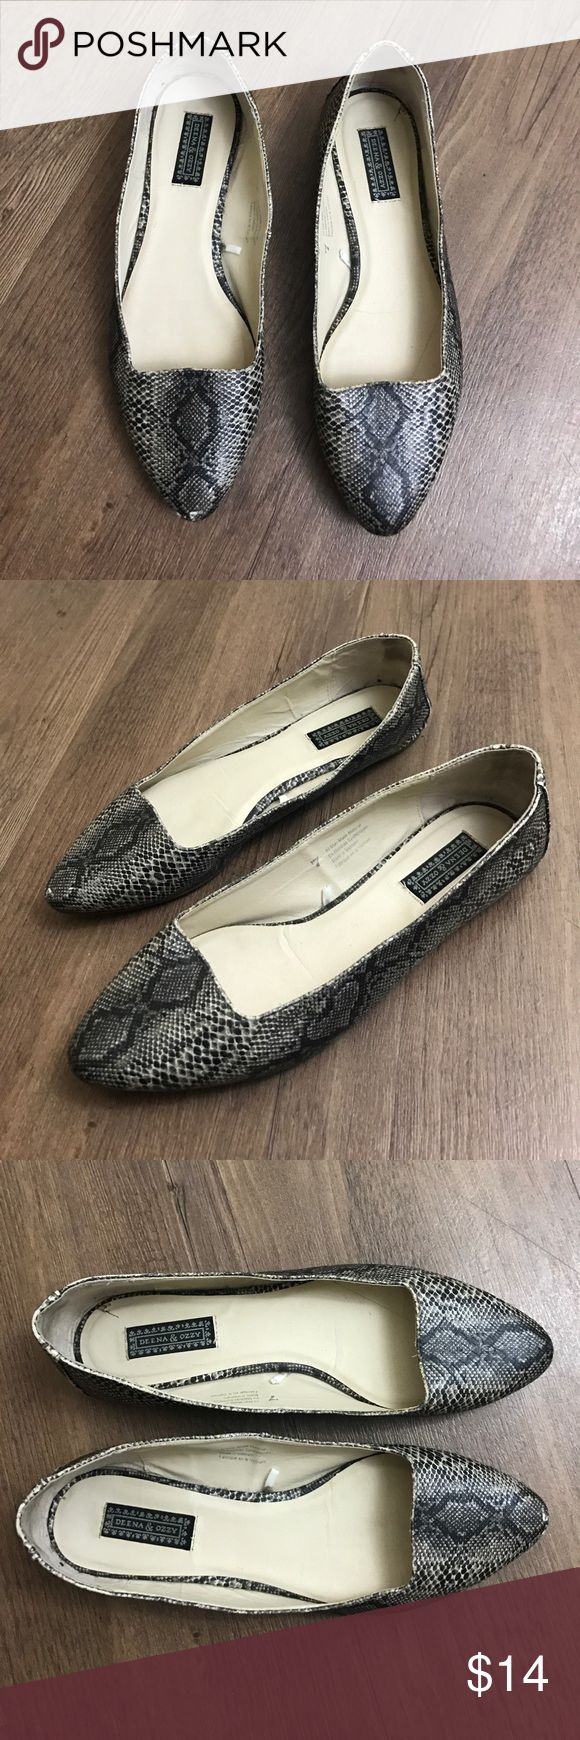 DEENA & OZZY Snake Print Pointy Toe Flats Size 7 Great used condition - (very small scratch on tip of one of shoes (see photos)  Size 7 - FAST SHIPPING Deena & Ozzy Shoes Flats & Loafers